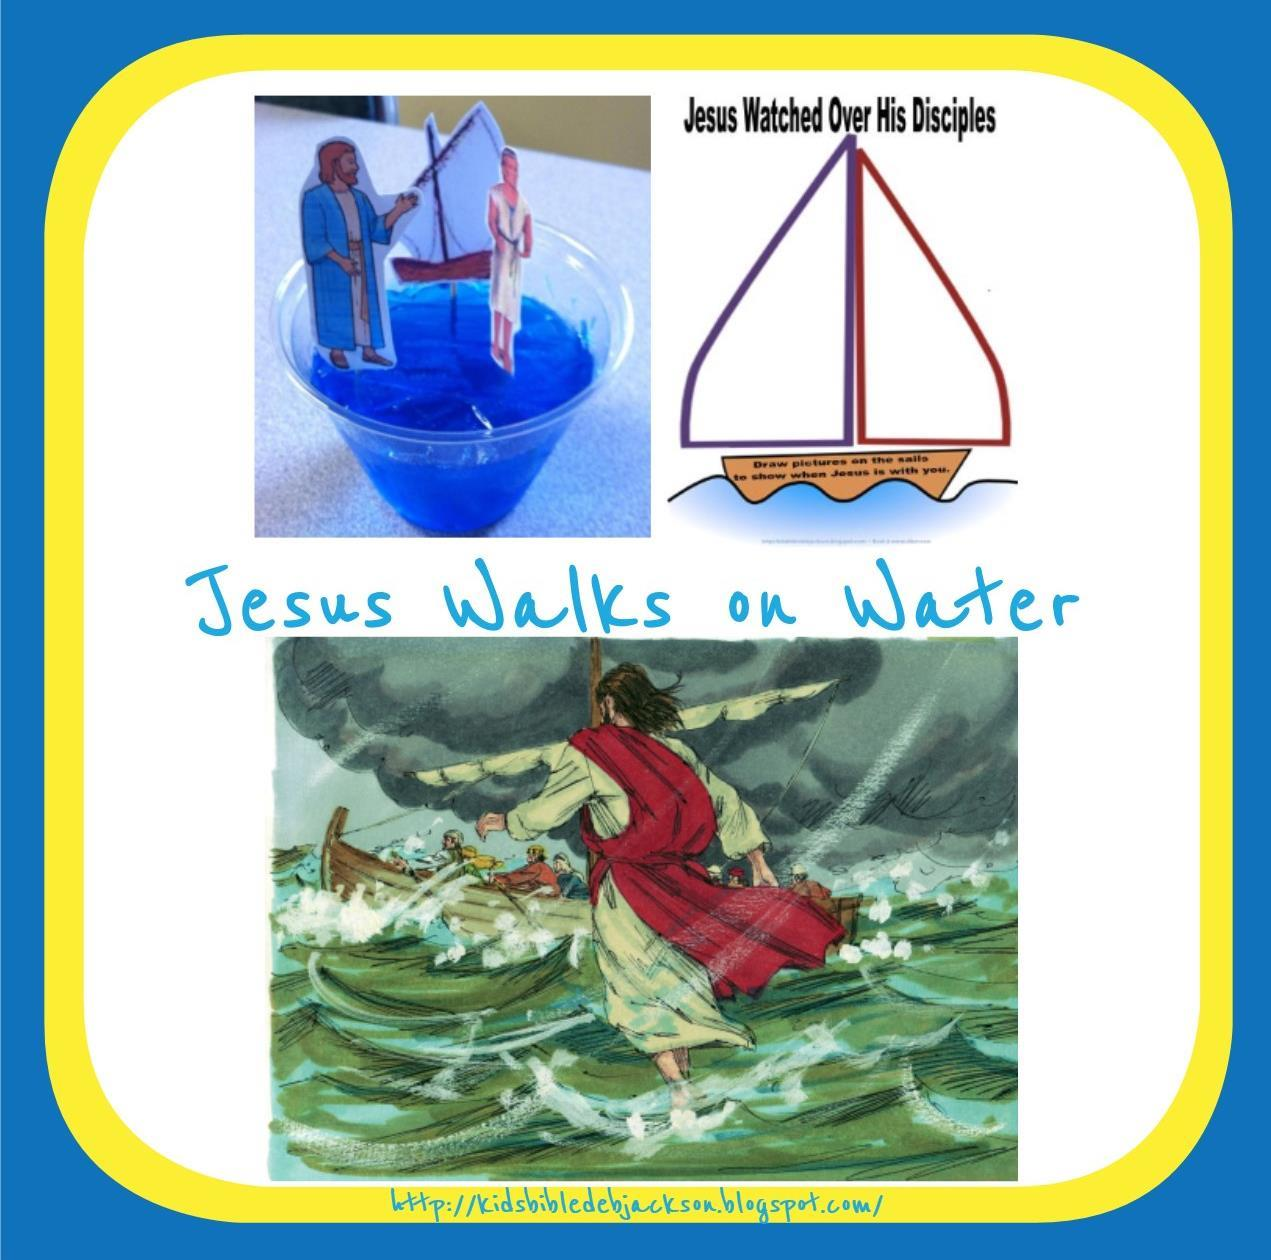 http://kidsbibledebjackson.blogspot.com/2014/08/jesus-walks-on-water.html